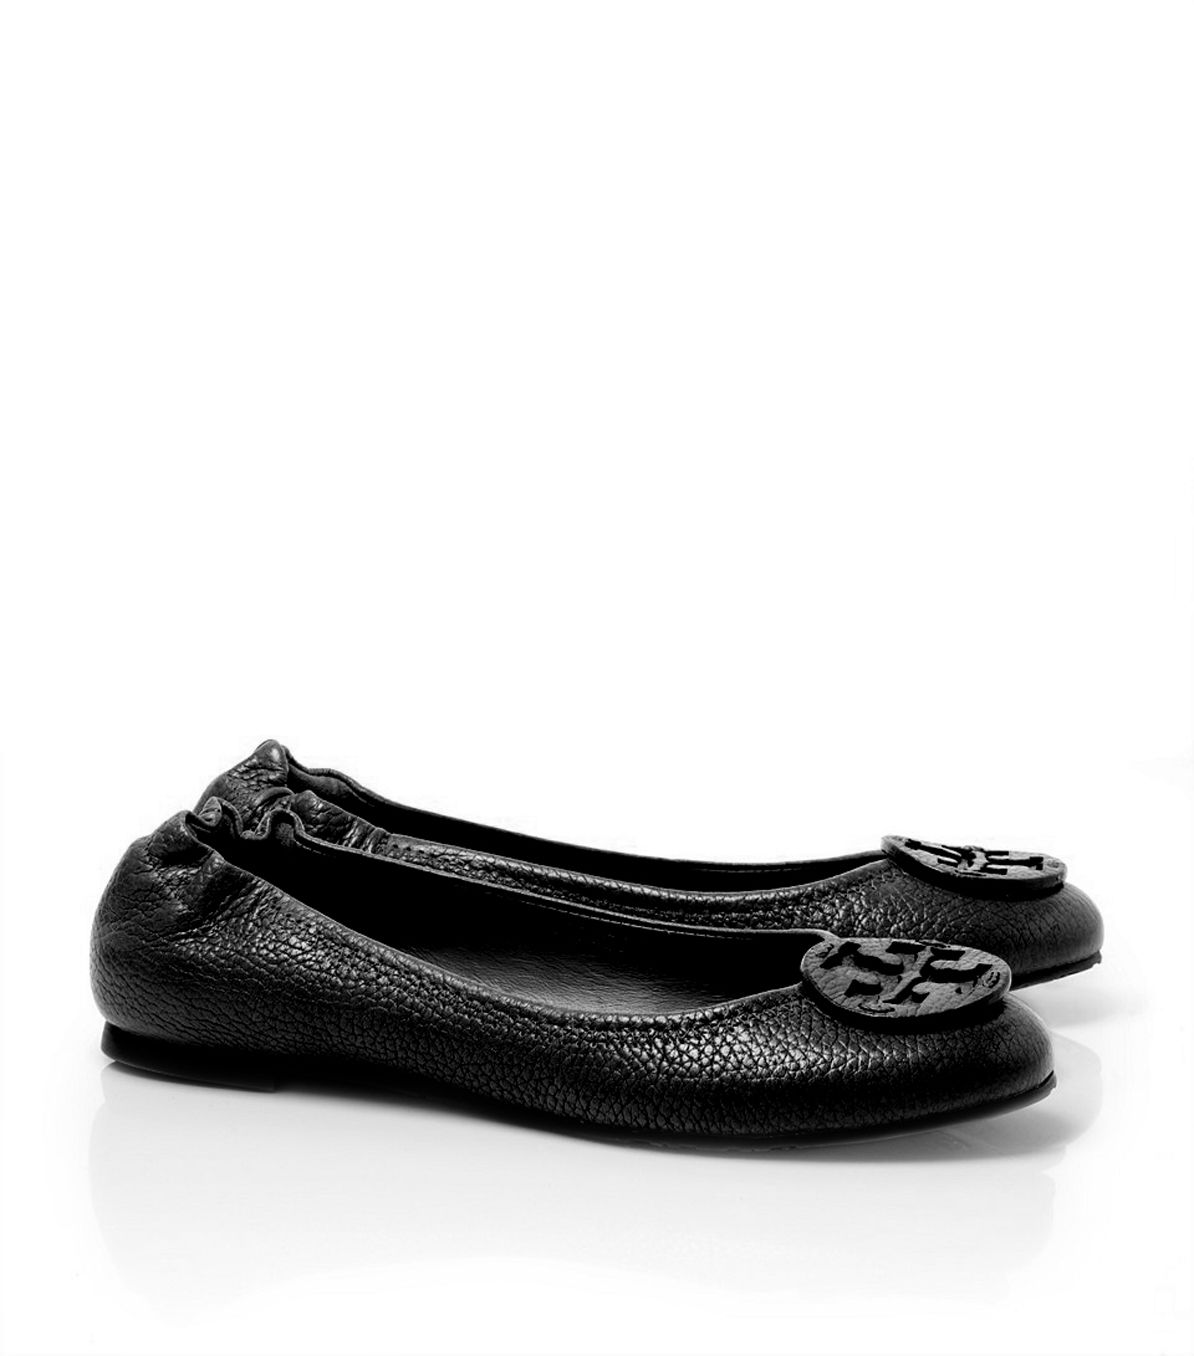 18fad24edce Lyst - Tory Burch Tumbled Leather Reva Ballet Flat in Black